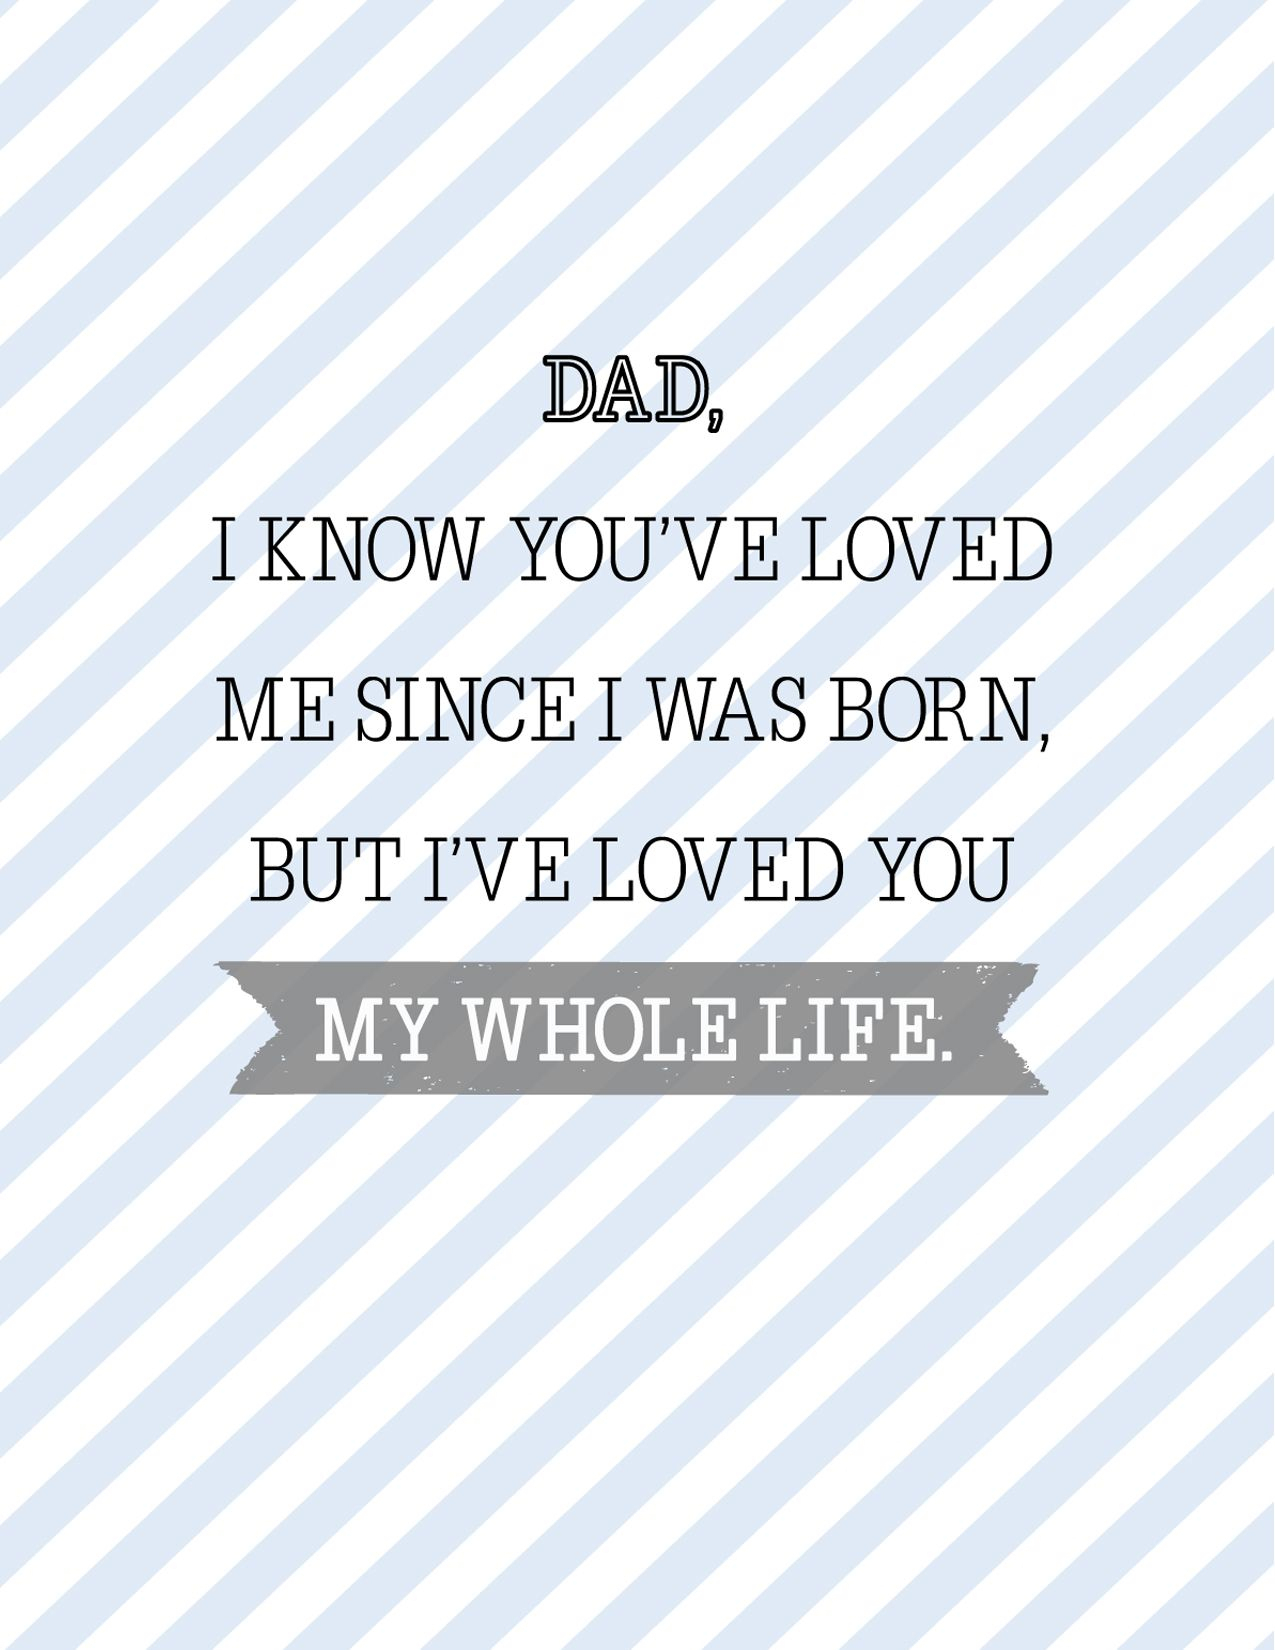 15 Free Printable Father's Day Cards - Cute Online Father's Day - Free Printable Father's Day Card From Wife To Husband